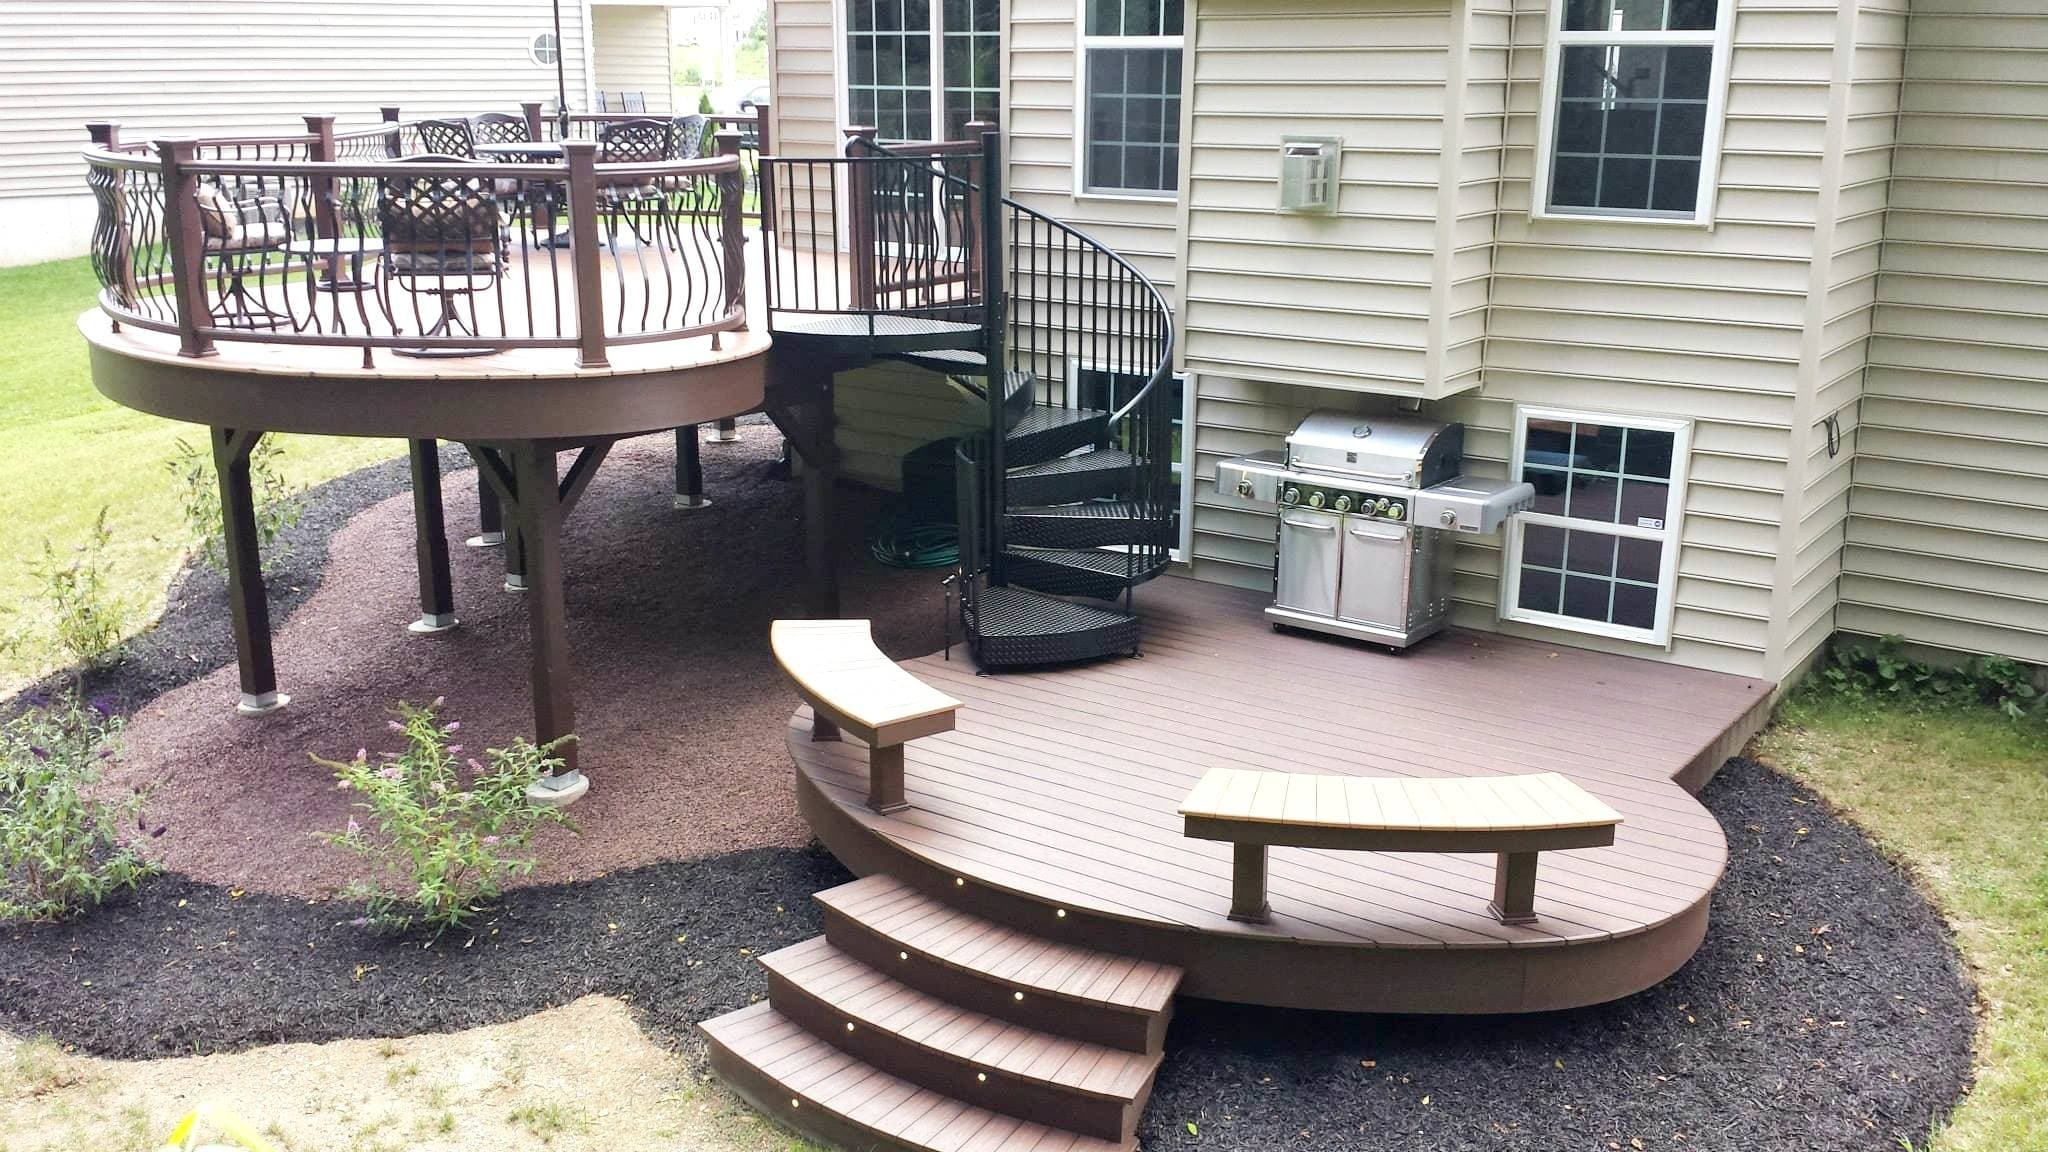 Five Weekend Diy Deck Projects Salter Spiral Stair | Diy Outdoor Spiral Staircase | Small Space | Before And After | Backyard | Half Circle | Metal